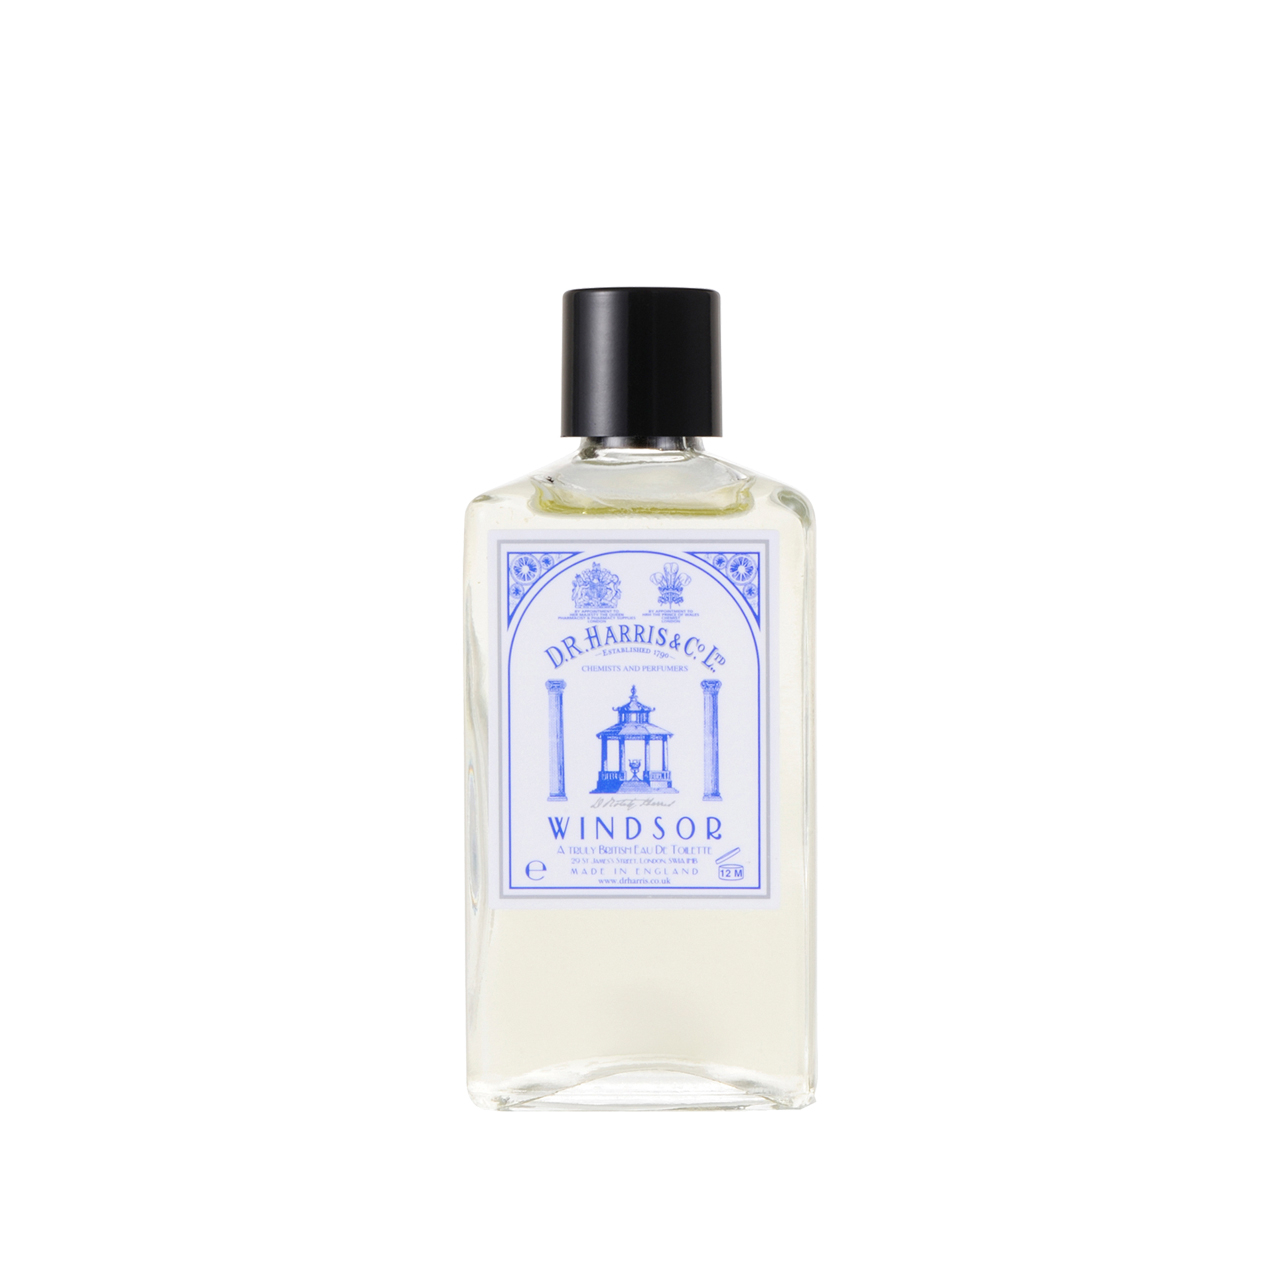 Windsor - After Shave Lotion